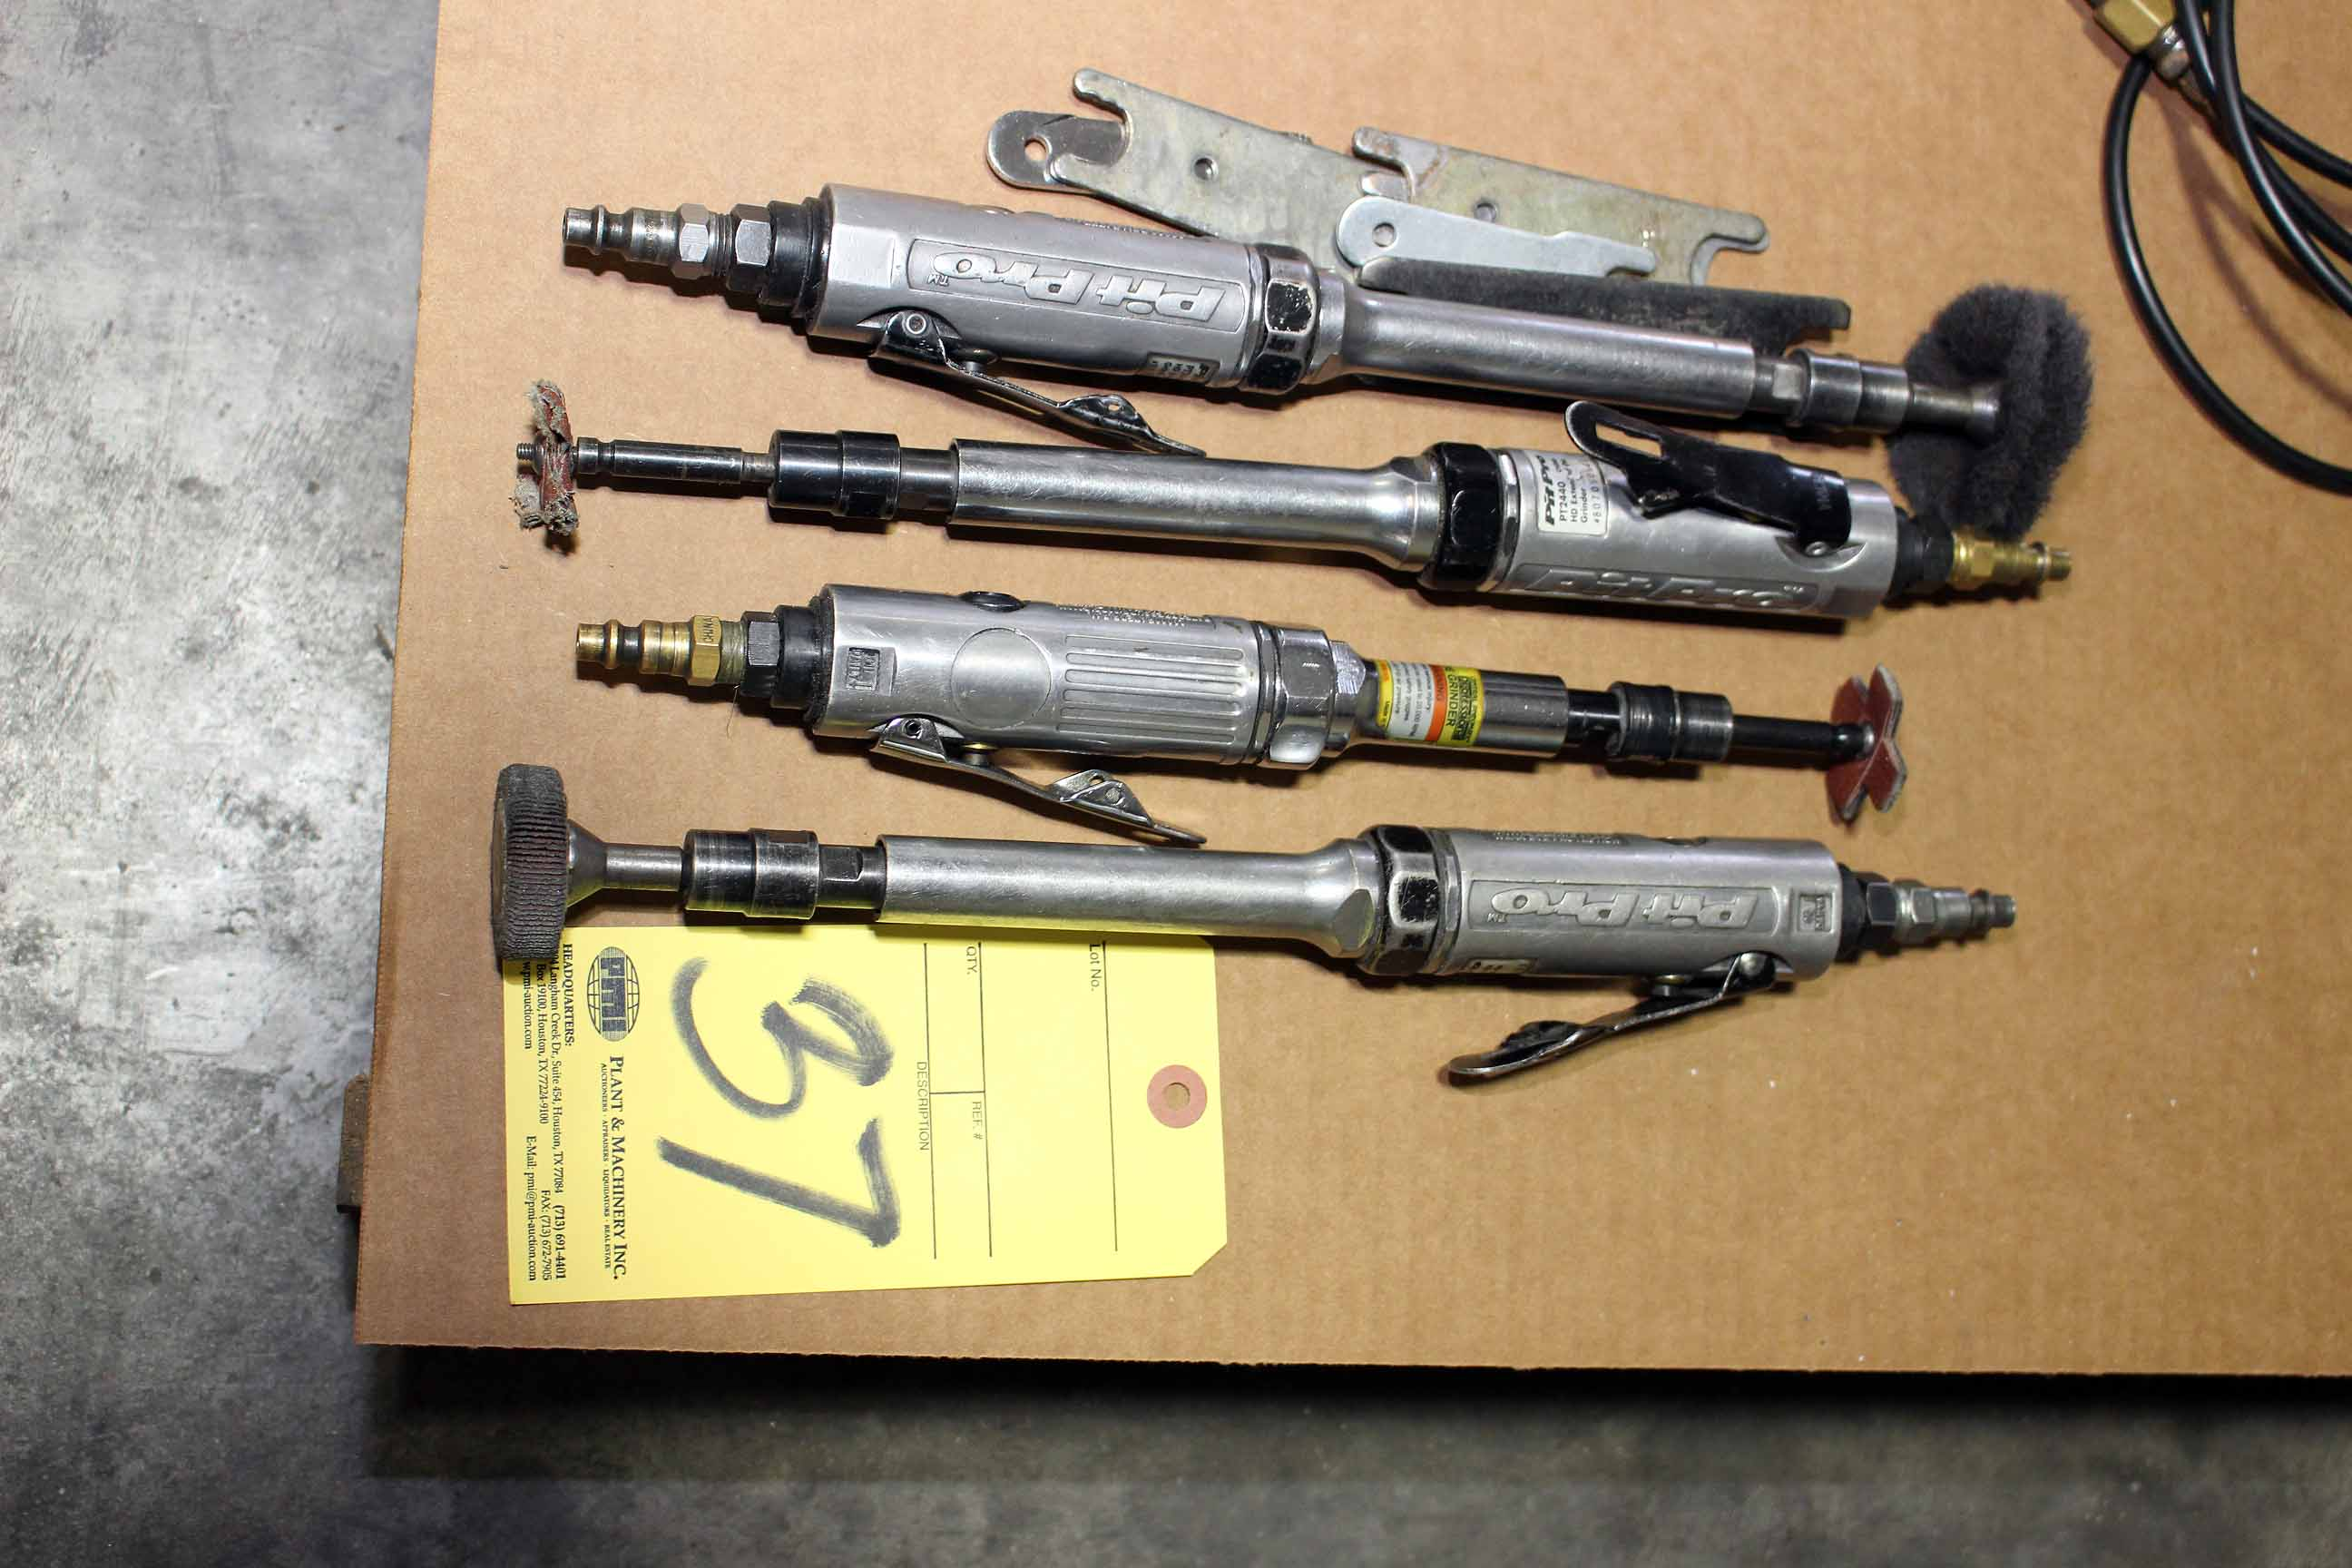 Lot 37 - LOT OF DIE GRINDERS, PNEUMATECH (Location A)